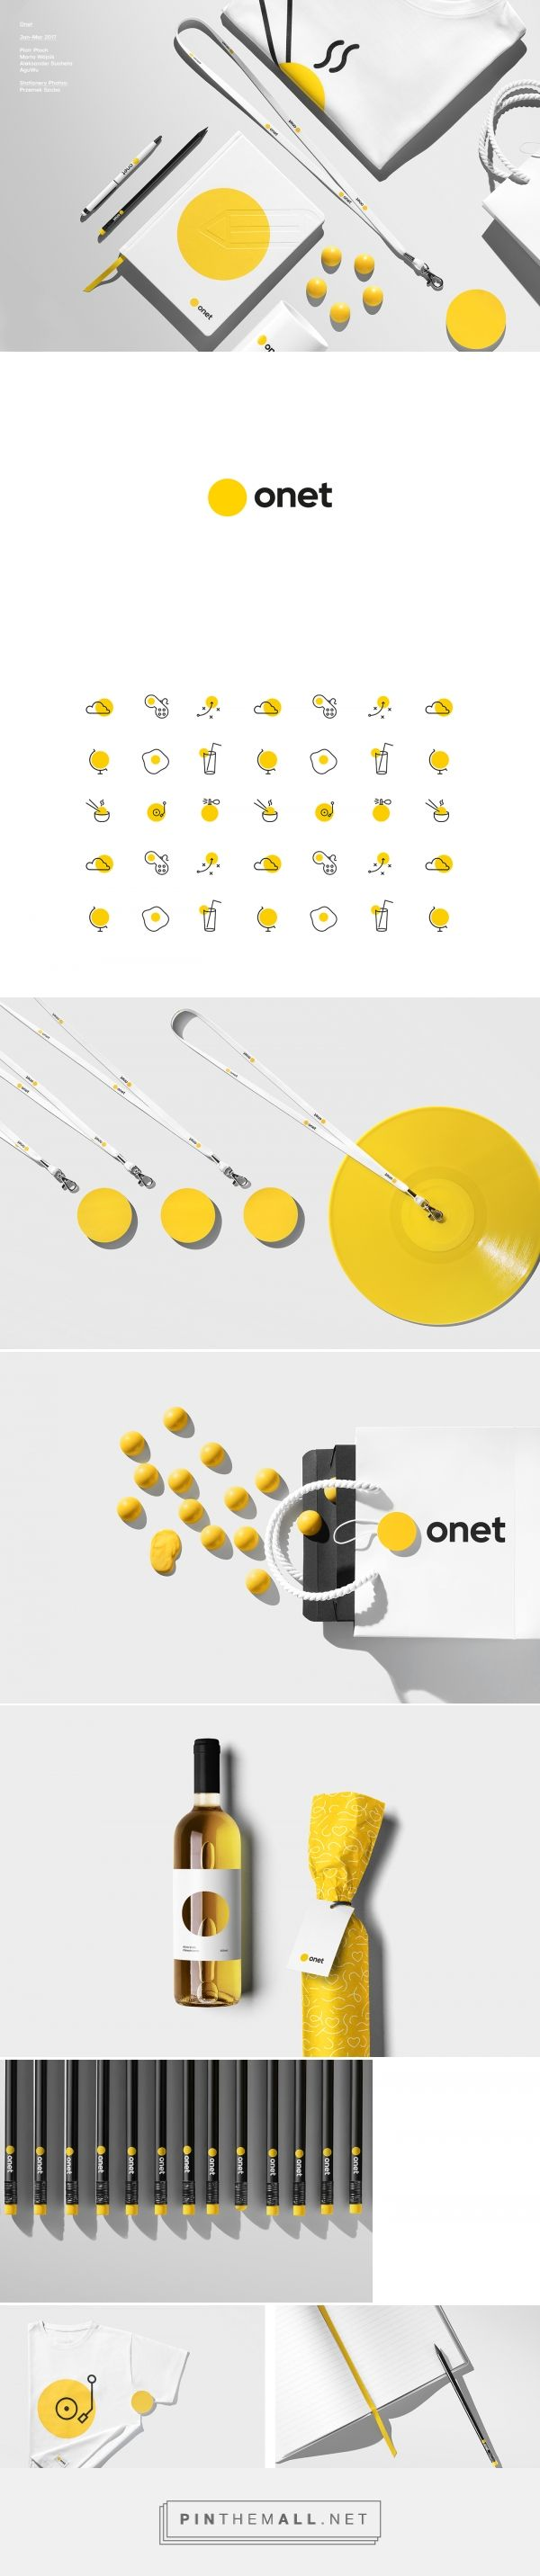 Brand Identity & Graphic Design: Onet - created via https://pinthemall.net